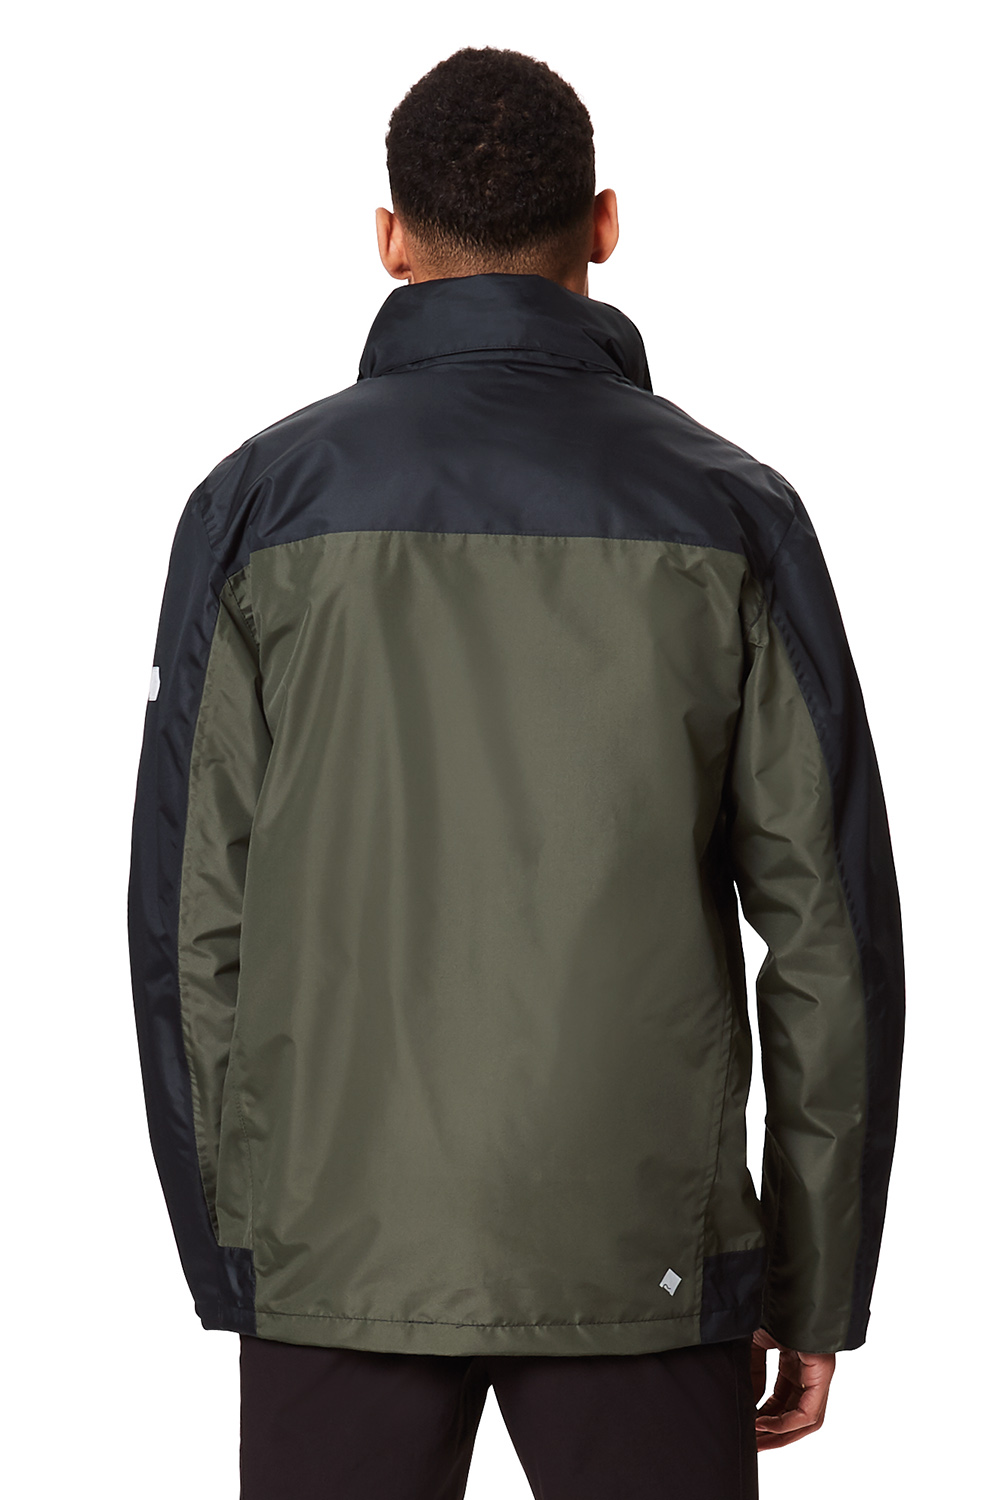 Regatta-Mens-Calderdale-II-Jacket-Waterproof-Breathable-Isotex-5000-Hooded-Coat thumbnail 23